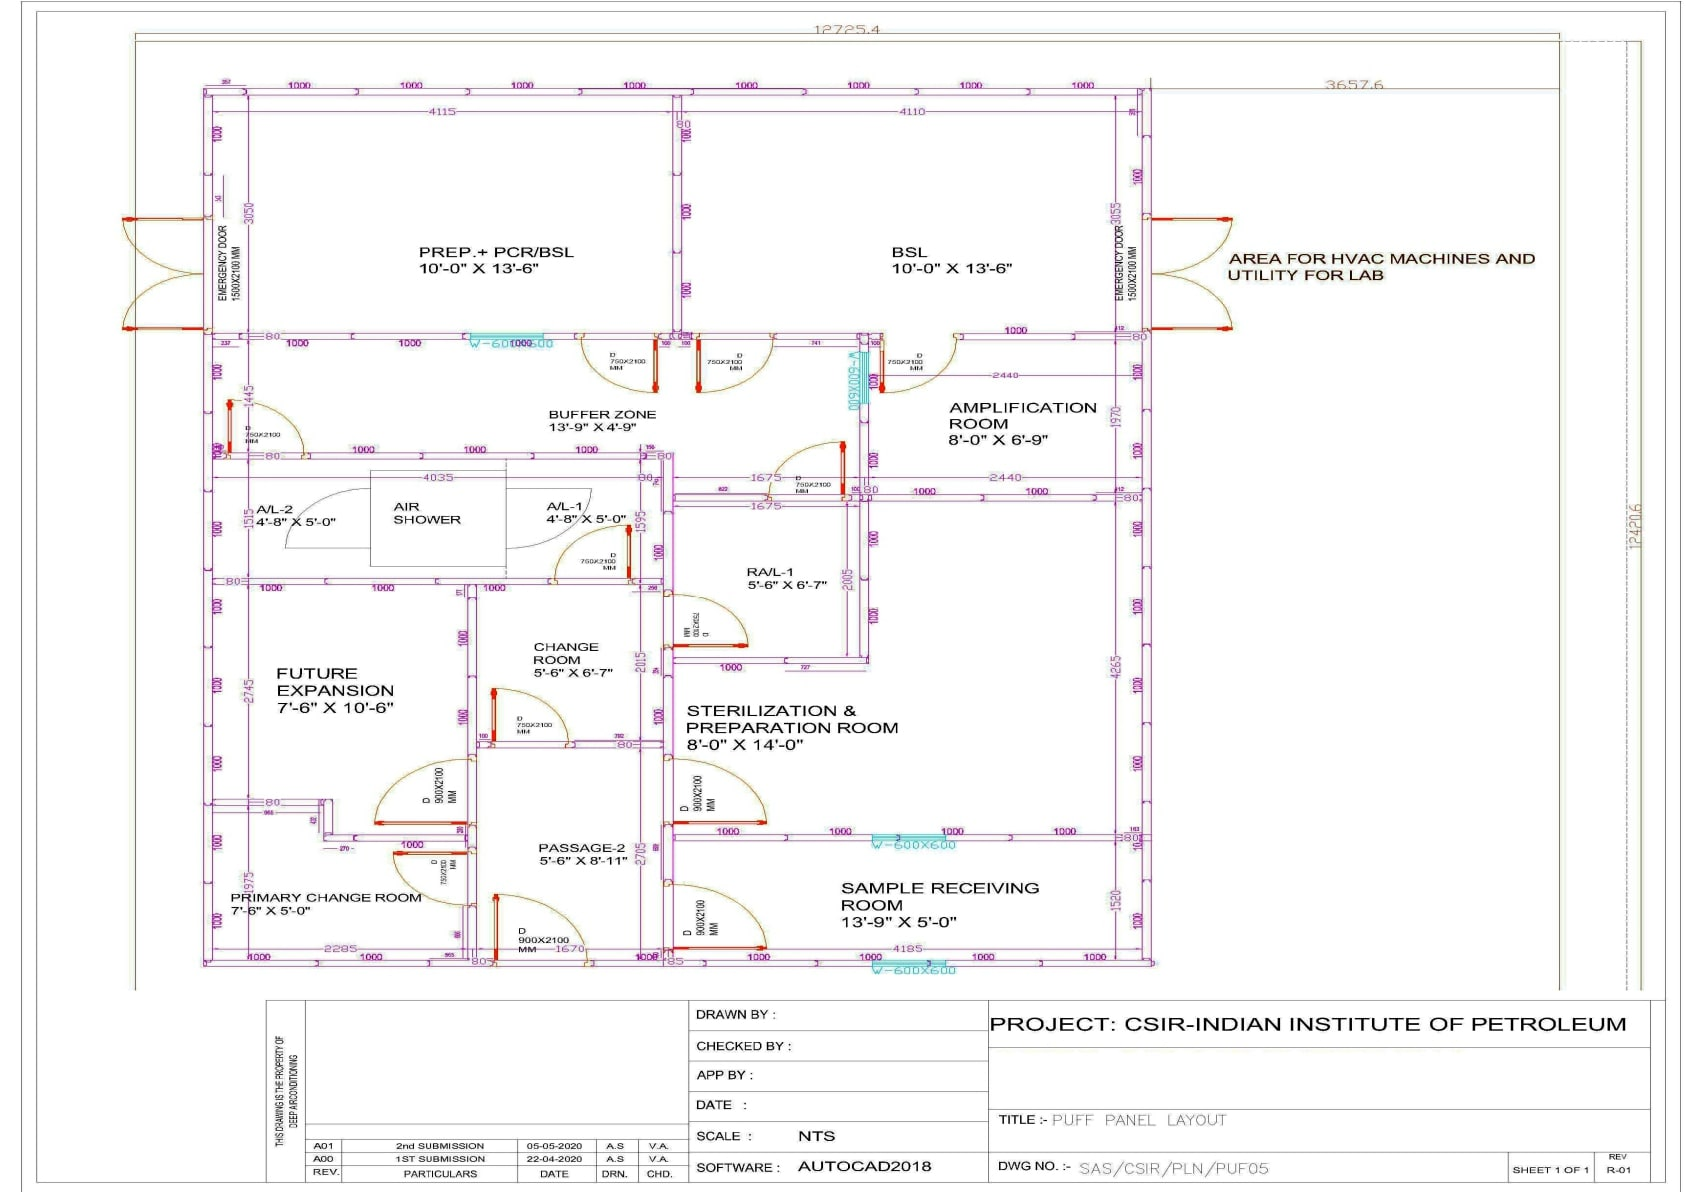 Plant layout designing as per Gmp.